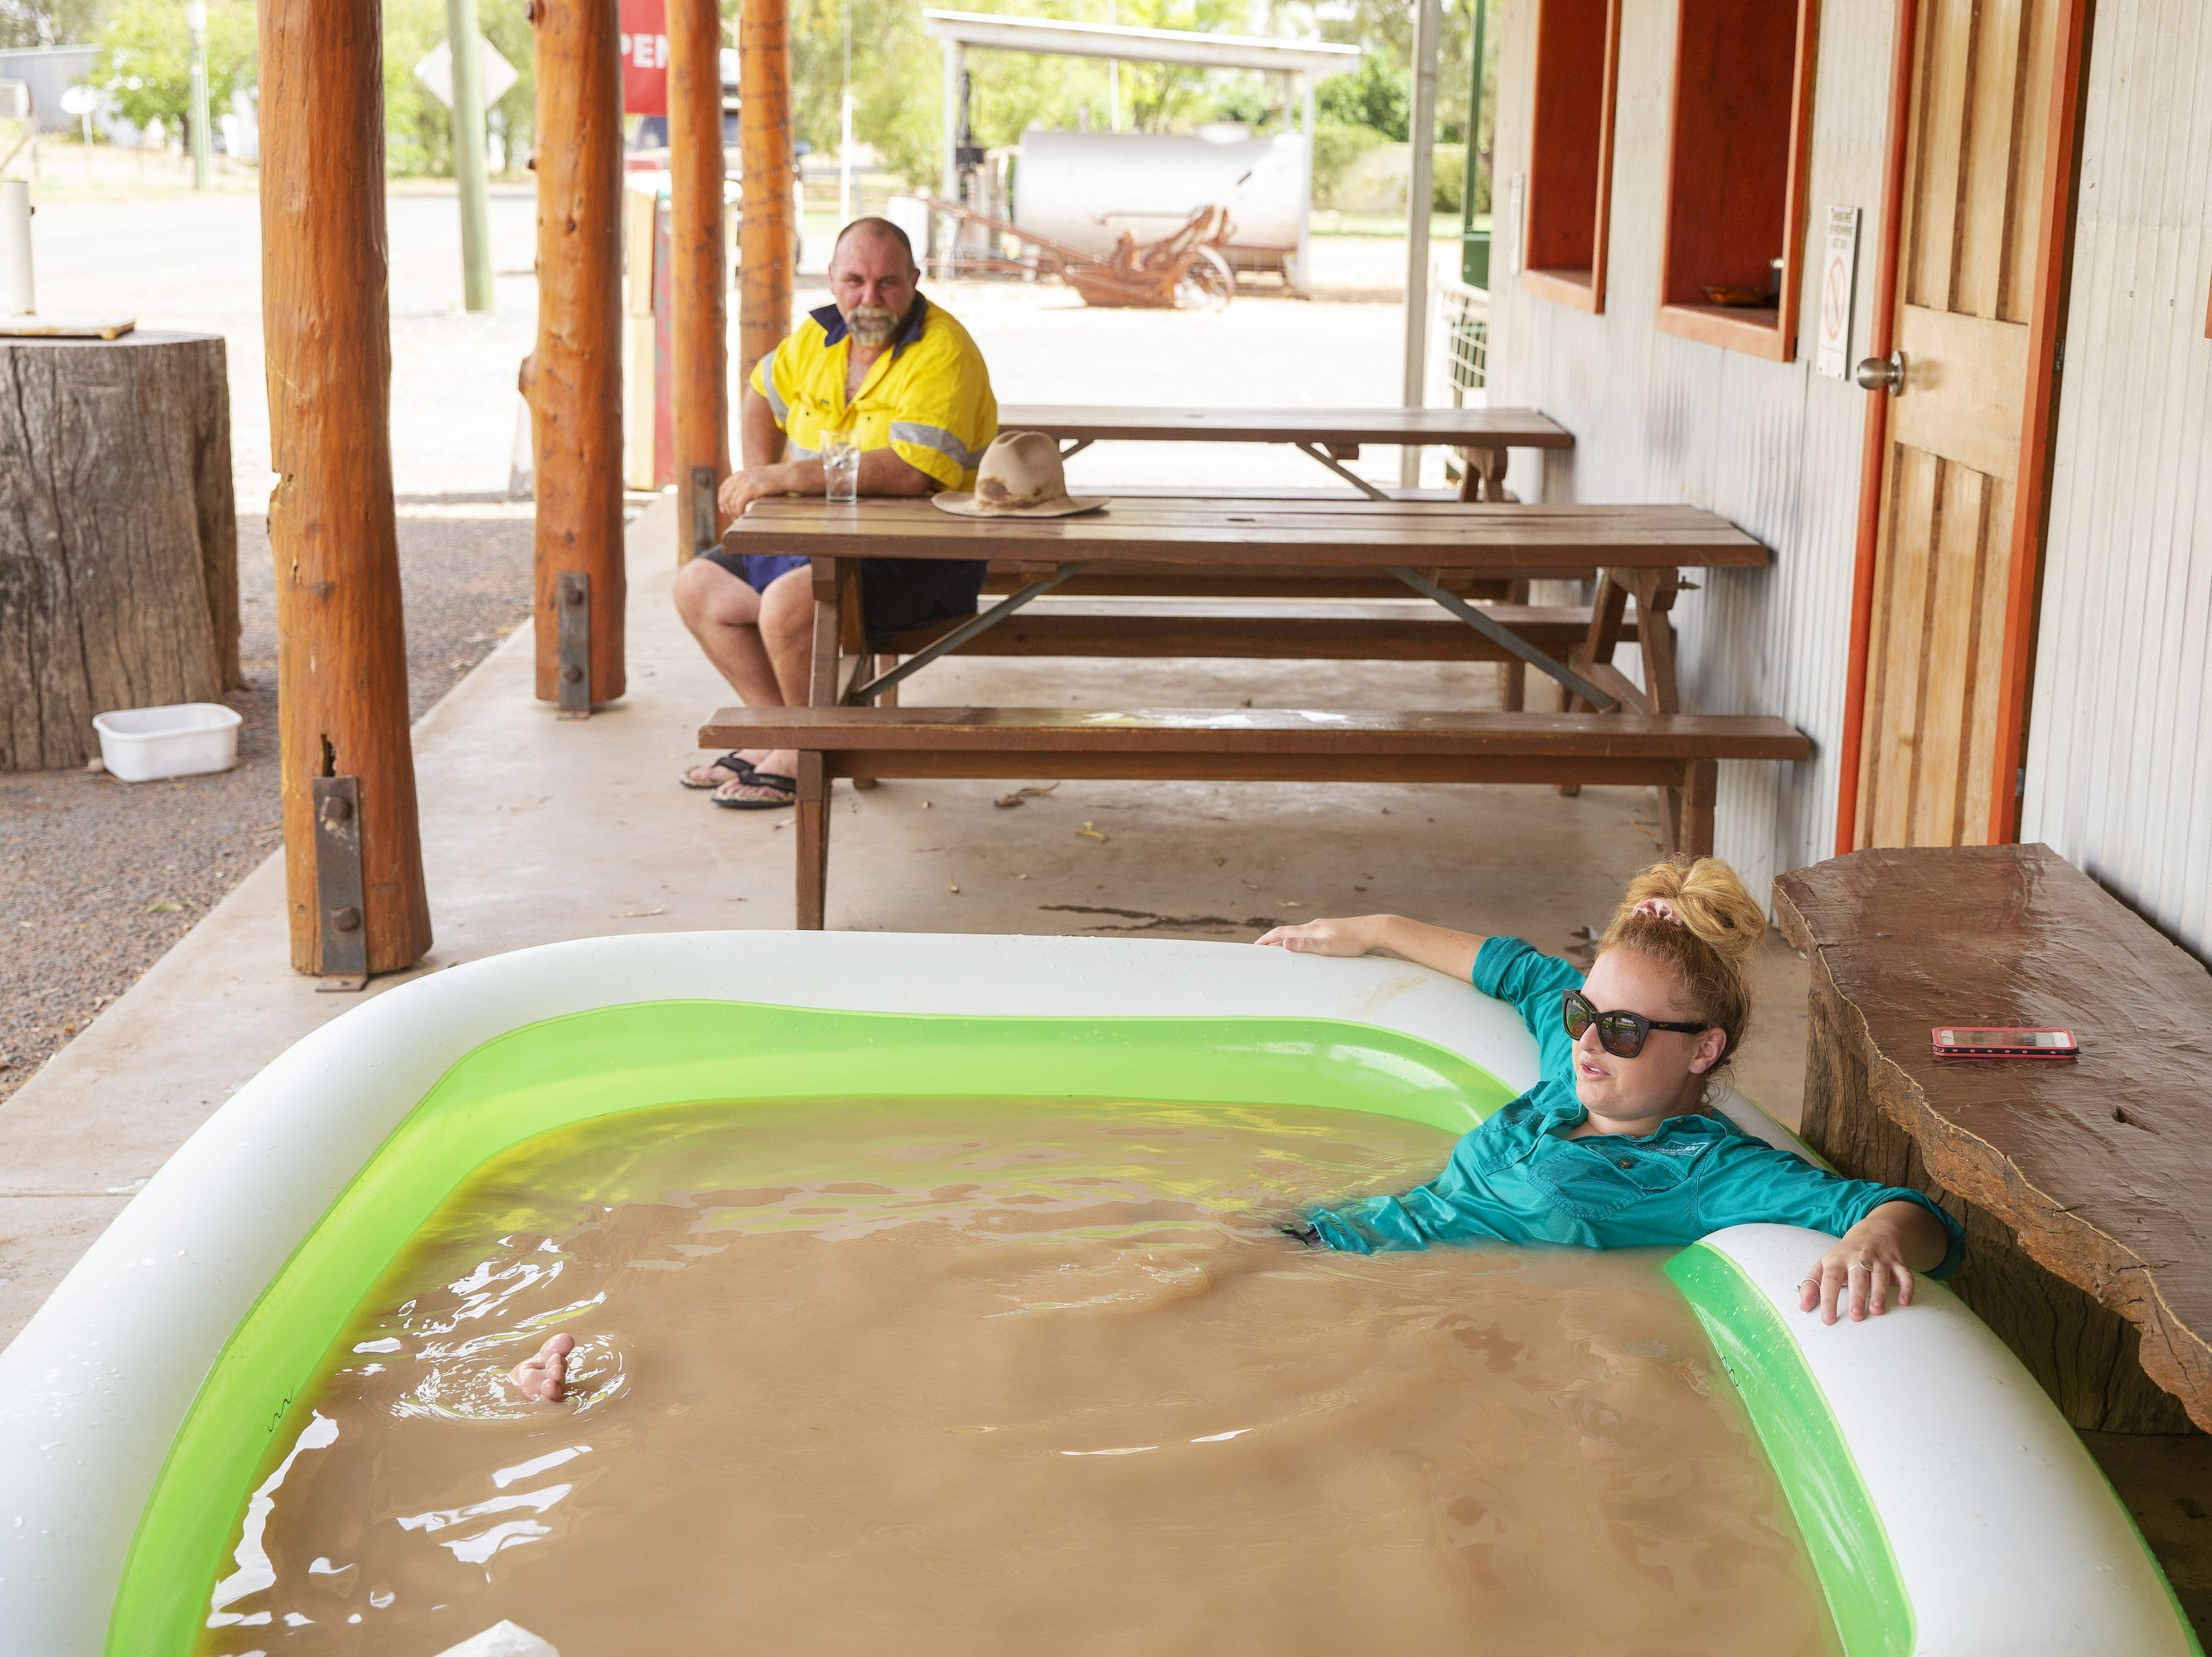 Jasmin Kew relaxes in a blow up pool full of muddy tap water from the Darling River in 116.6 degree heat outside of Shindy's Inn on Jan. 17, 2019 in Louth, Australia. Local communities in the Darling River area are facing drought and clean water shortages as debate grows over the alleged mismanagement of the Murray-Darling Basin. Recent mass kills of hundreds of thousands of fish in the Darling river have raised serious questions about the way WaterNSW is managing the lakes system, and calls for a royal commission.